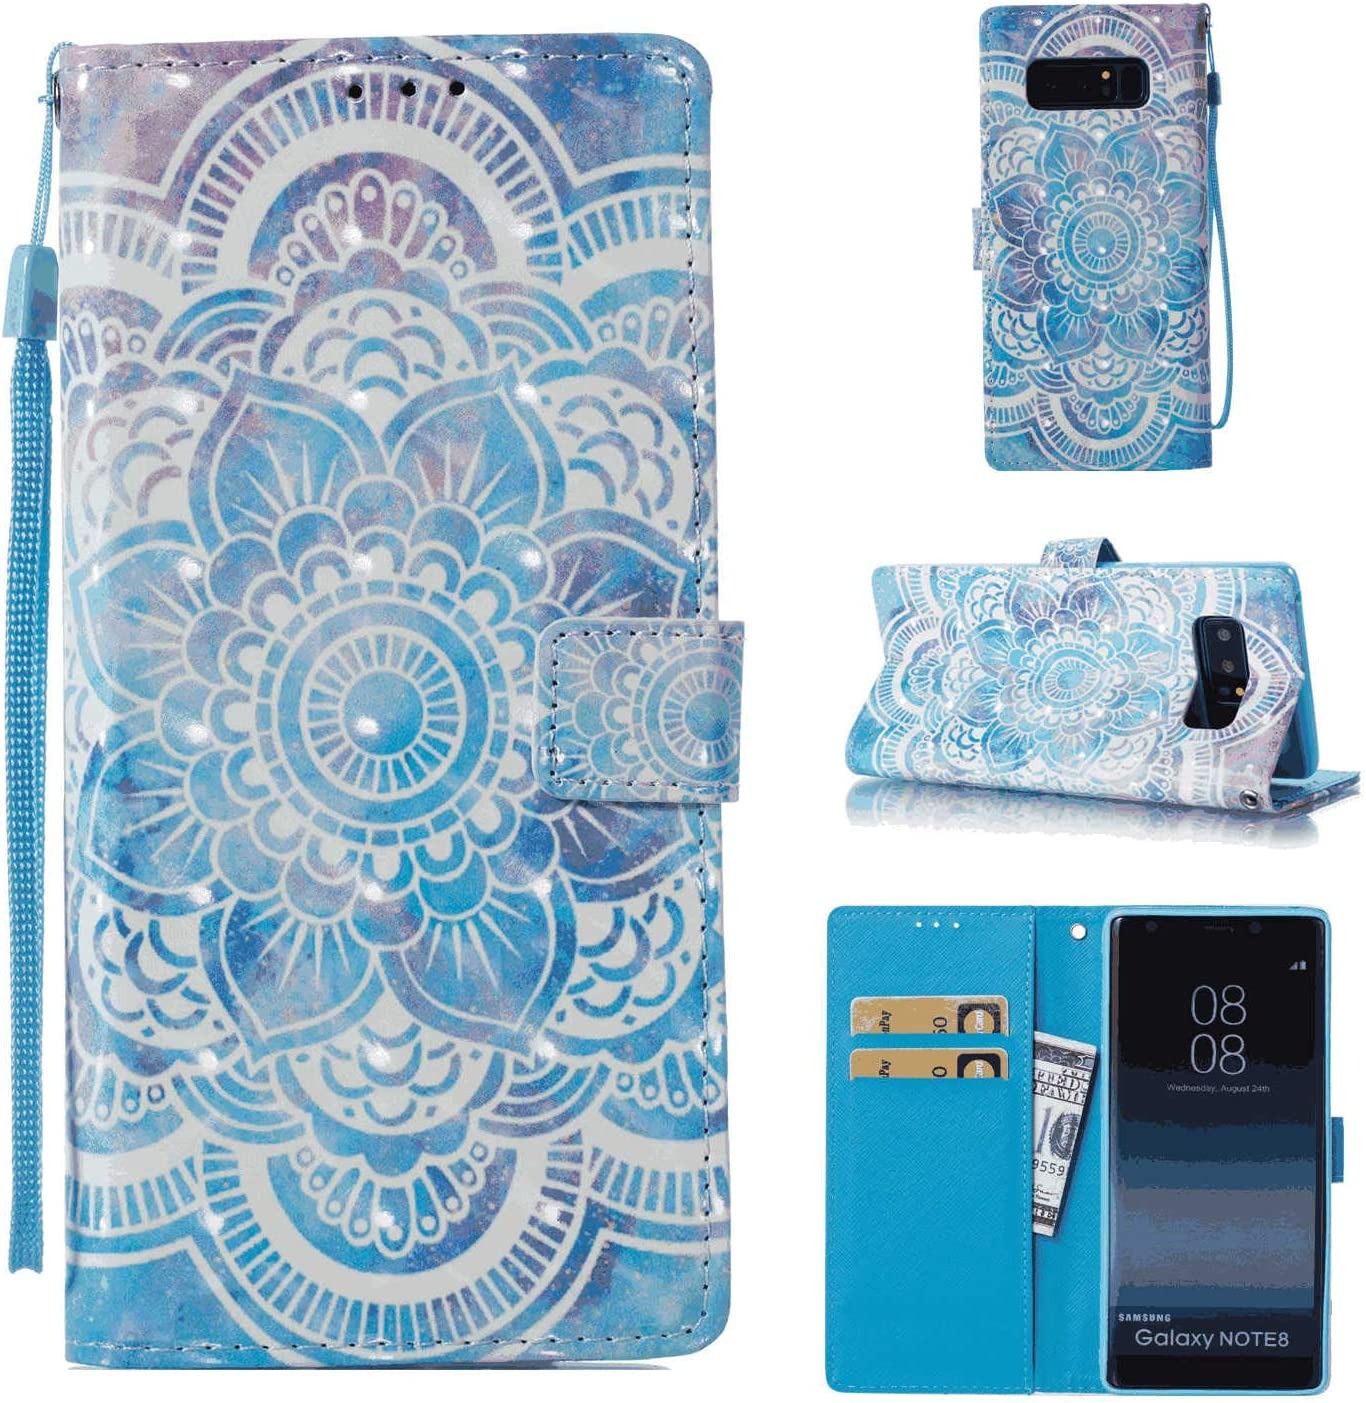 Leather Case for Samsung Galaxy S7 Flip Cover fit for Samsung Galaxy S7 Business Gifts with Waterproof-case Bags